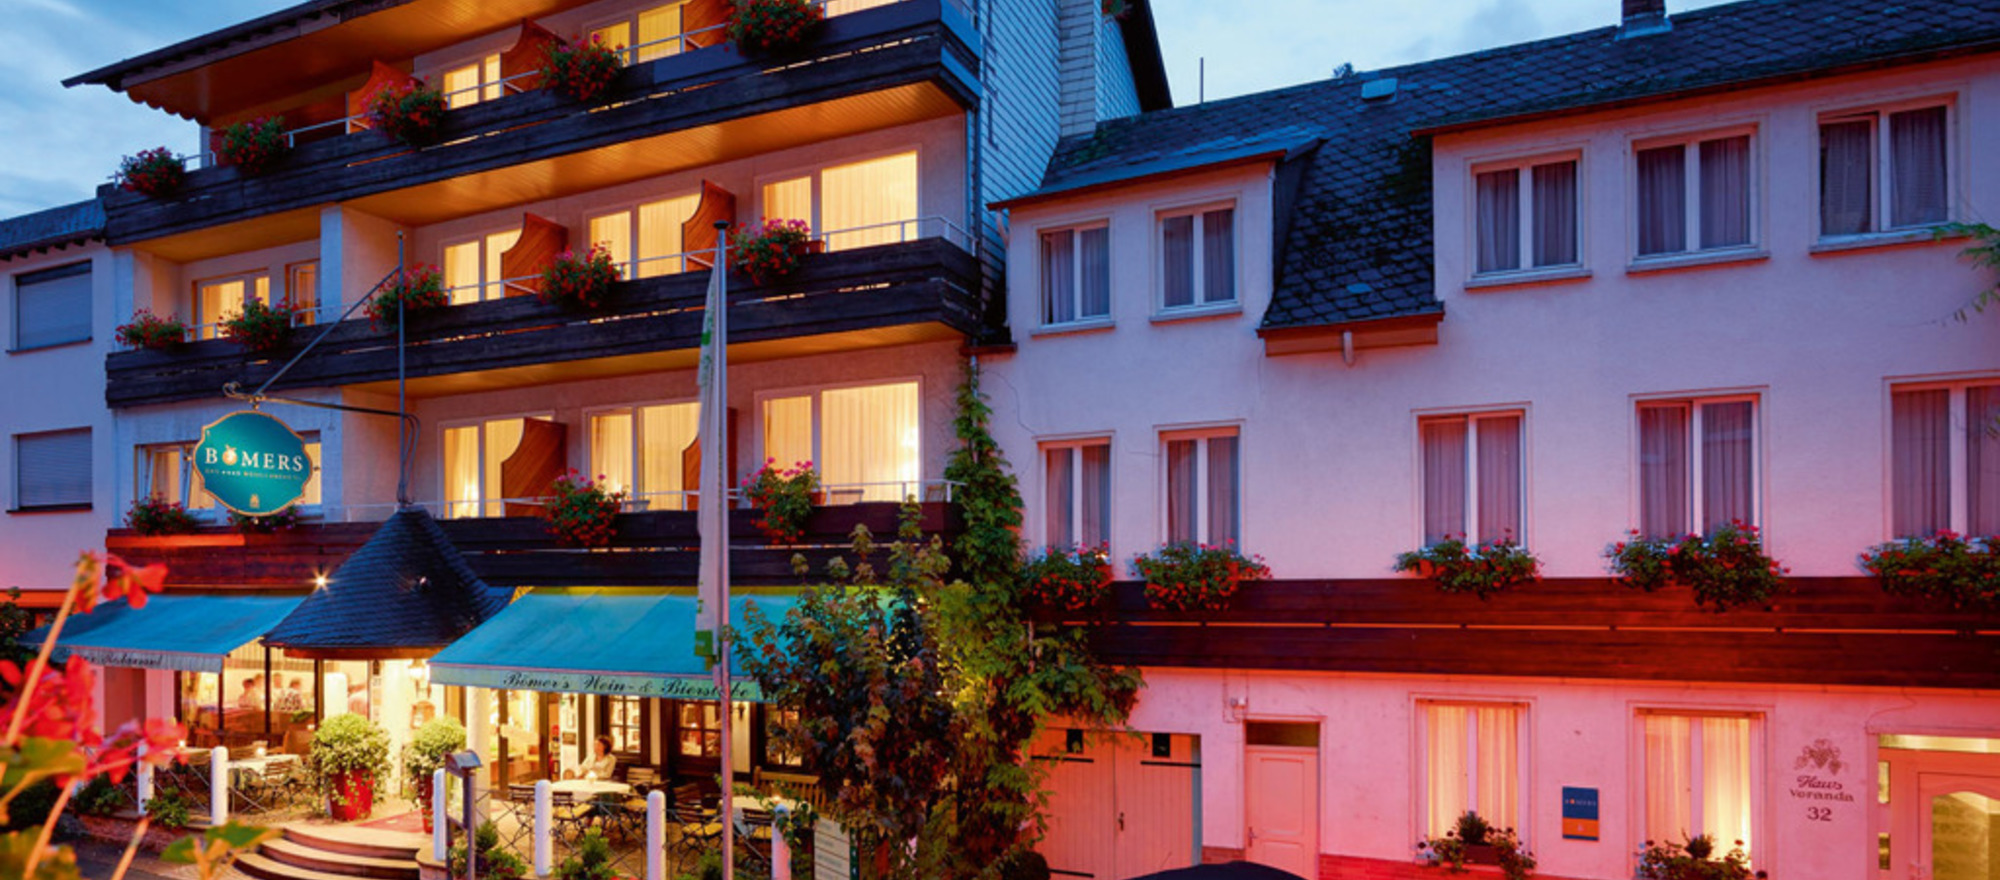 Evening mood at the 3-star-superior hotel Ringhotel Boemers Moselland in Alf/Mosel